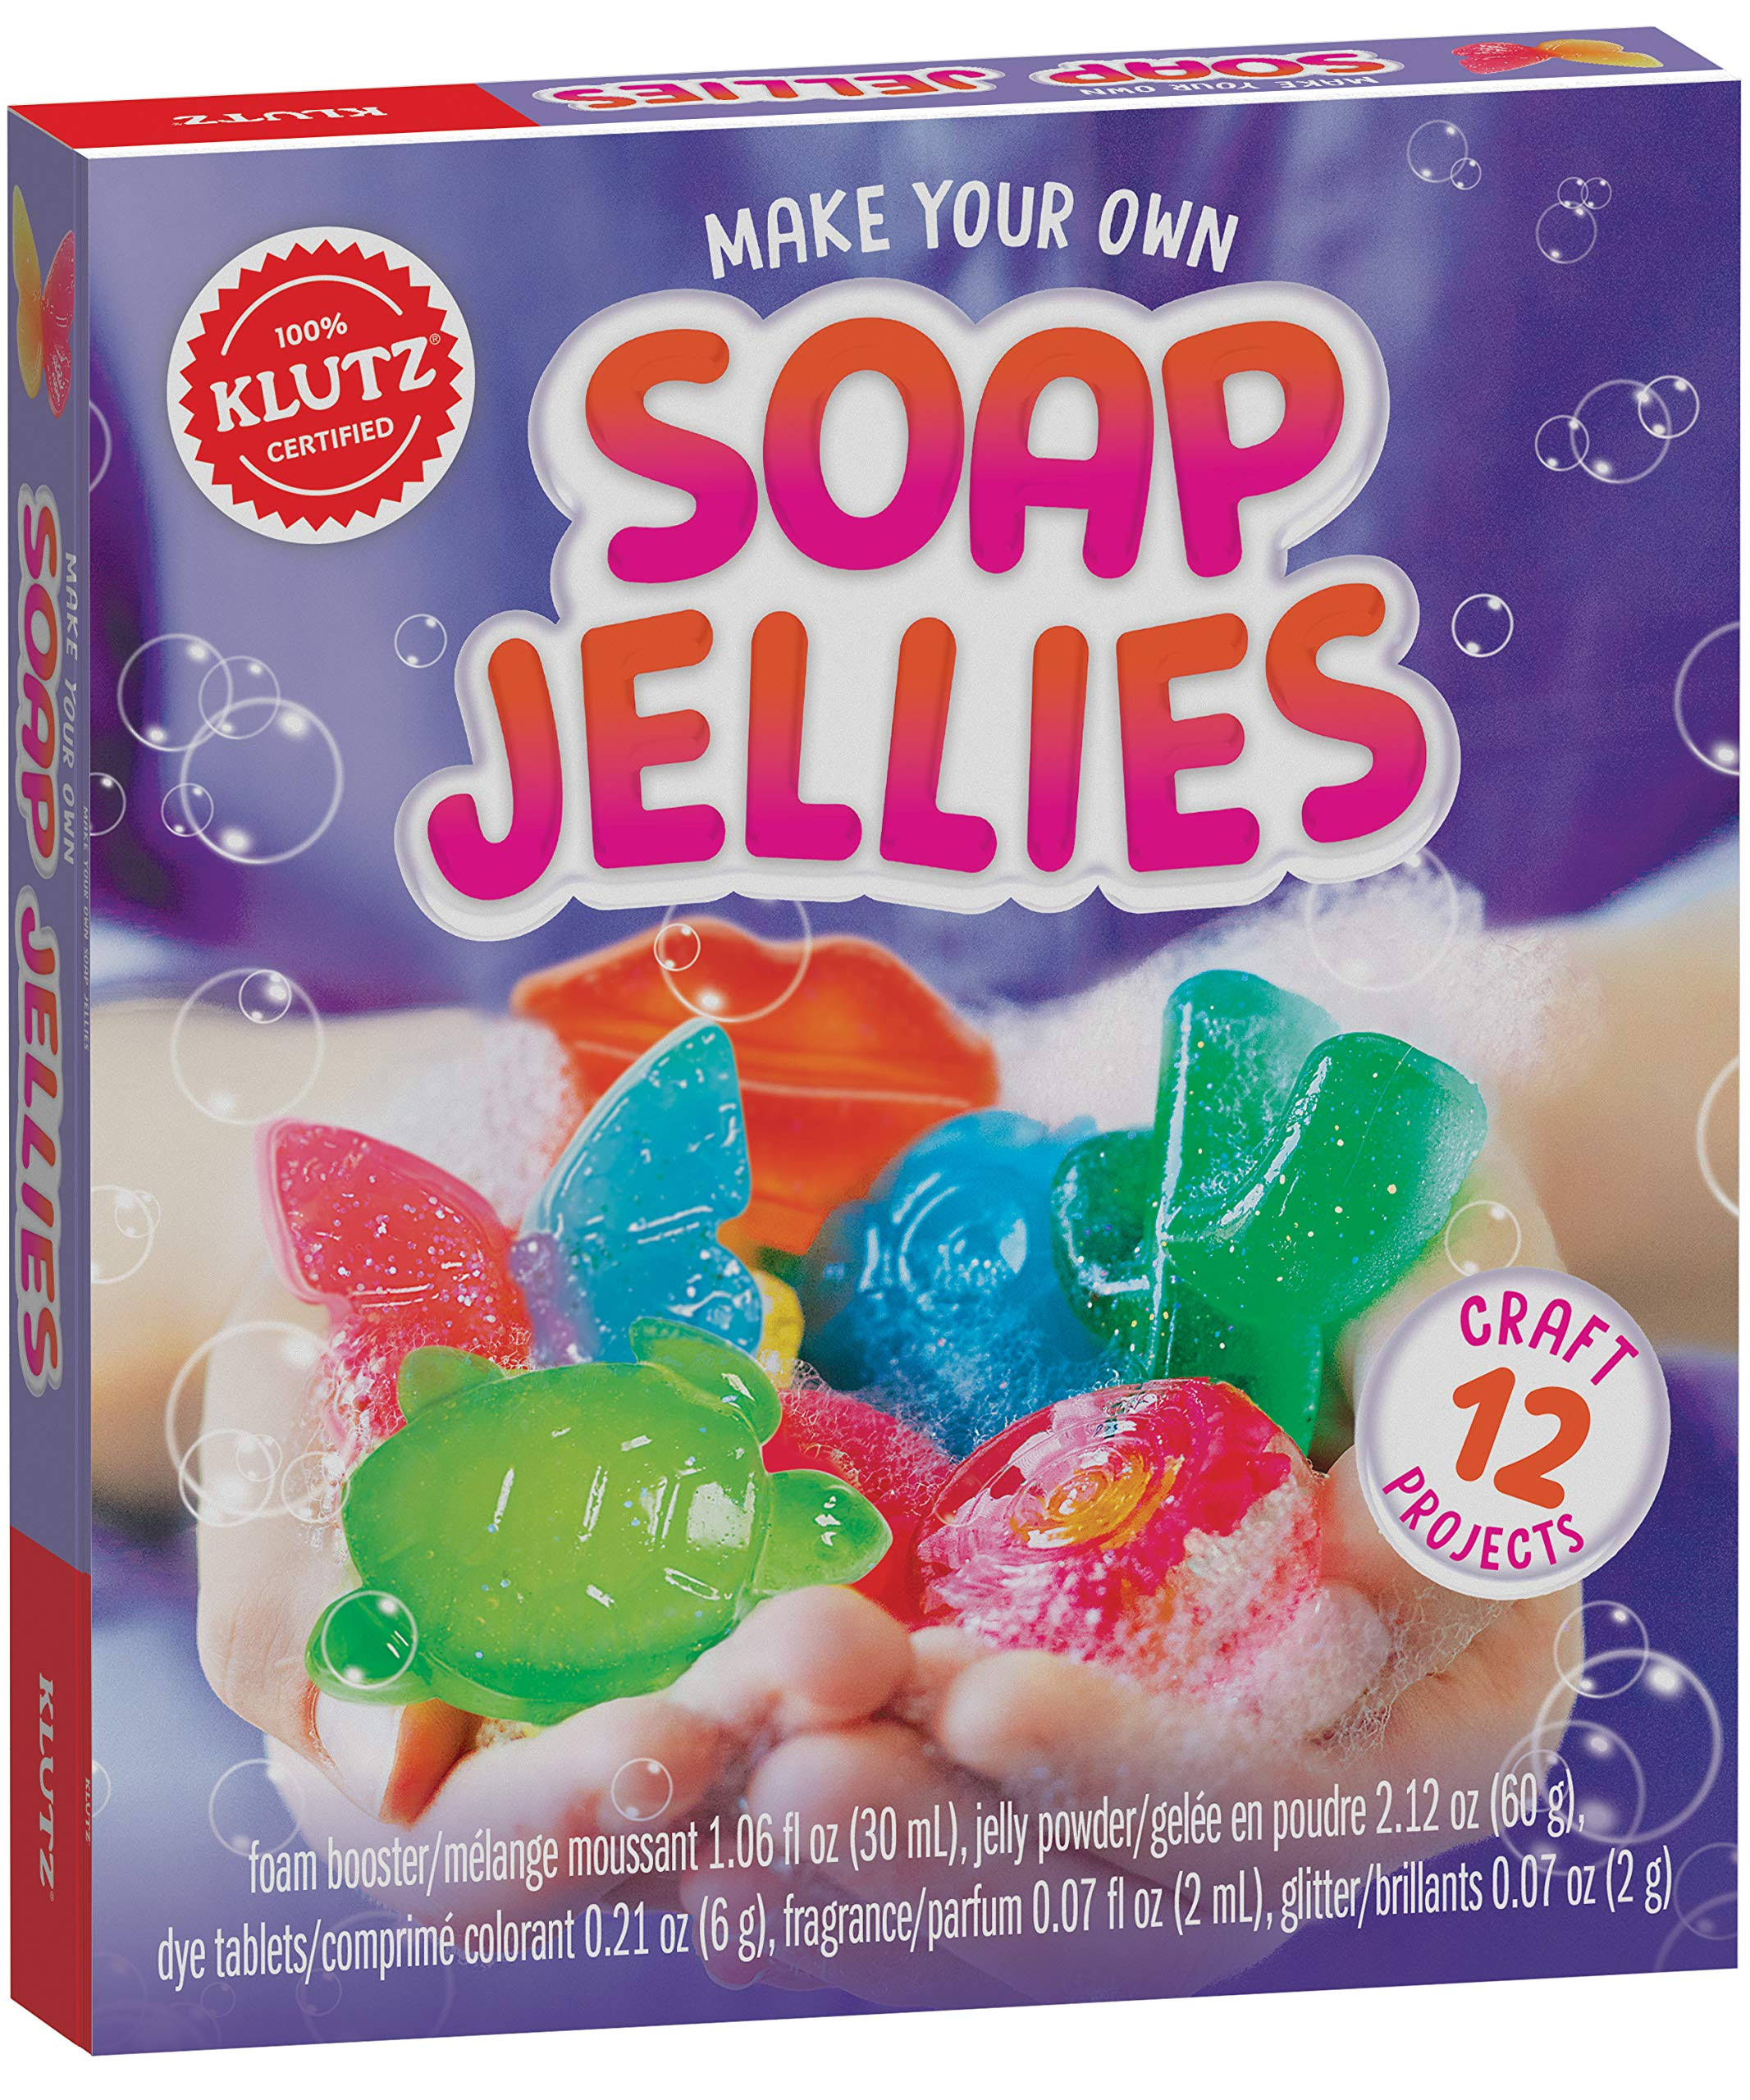 Klutz Make Your Own Soap Jellies Kit